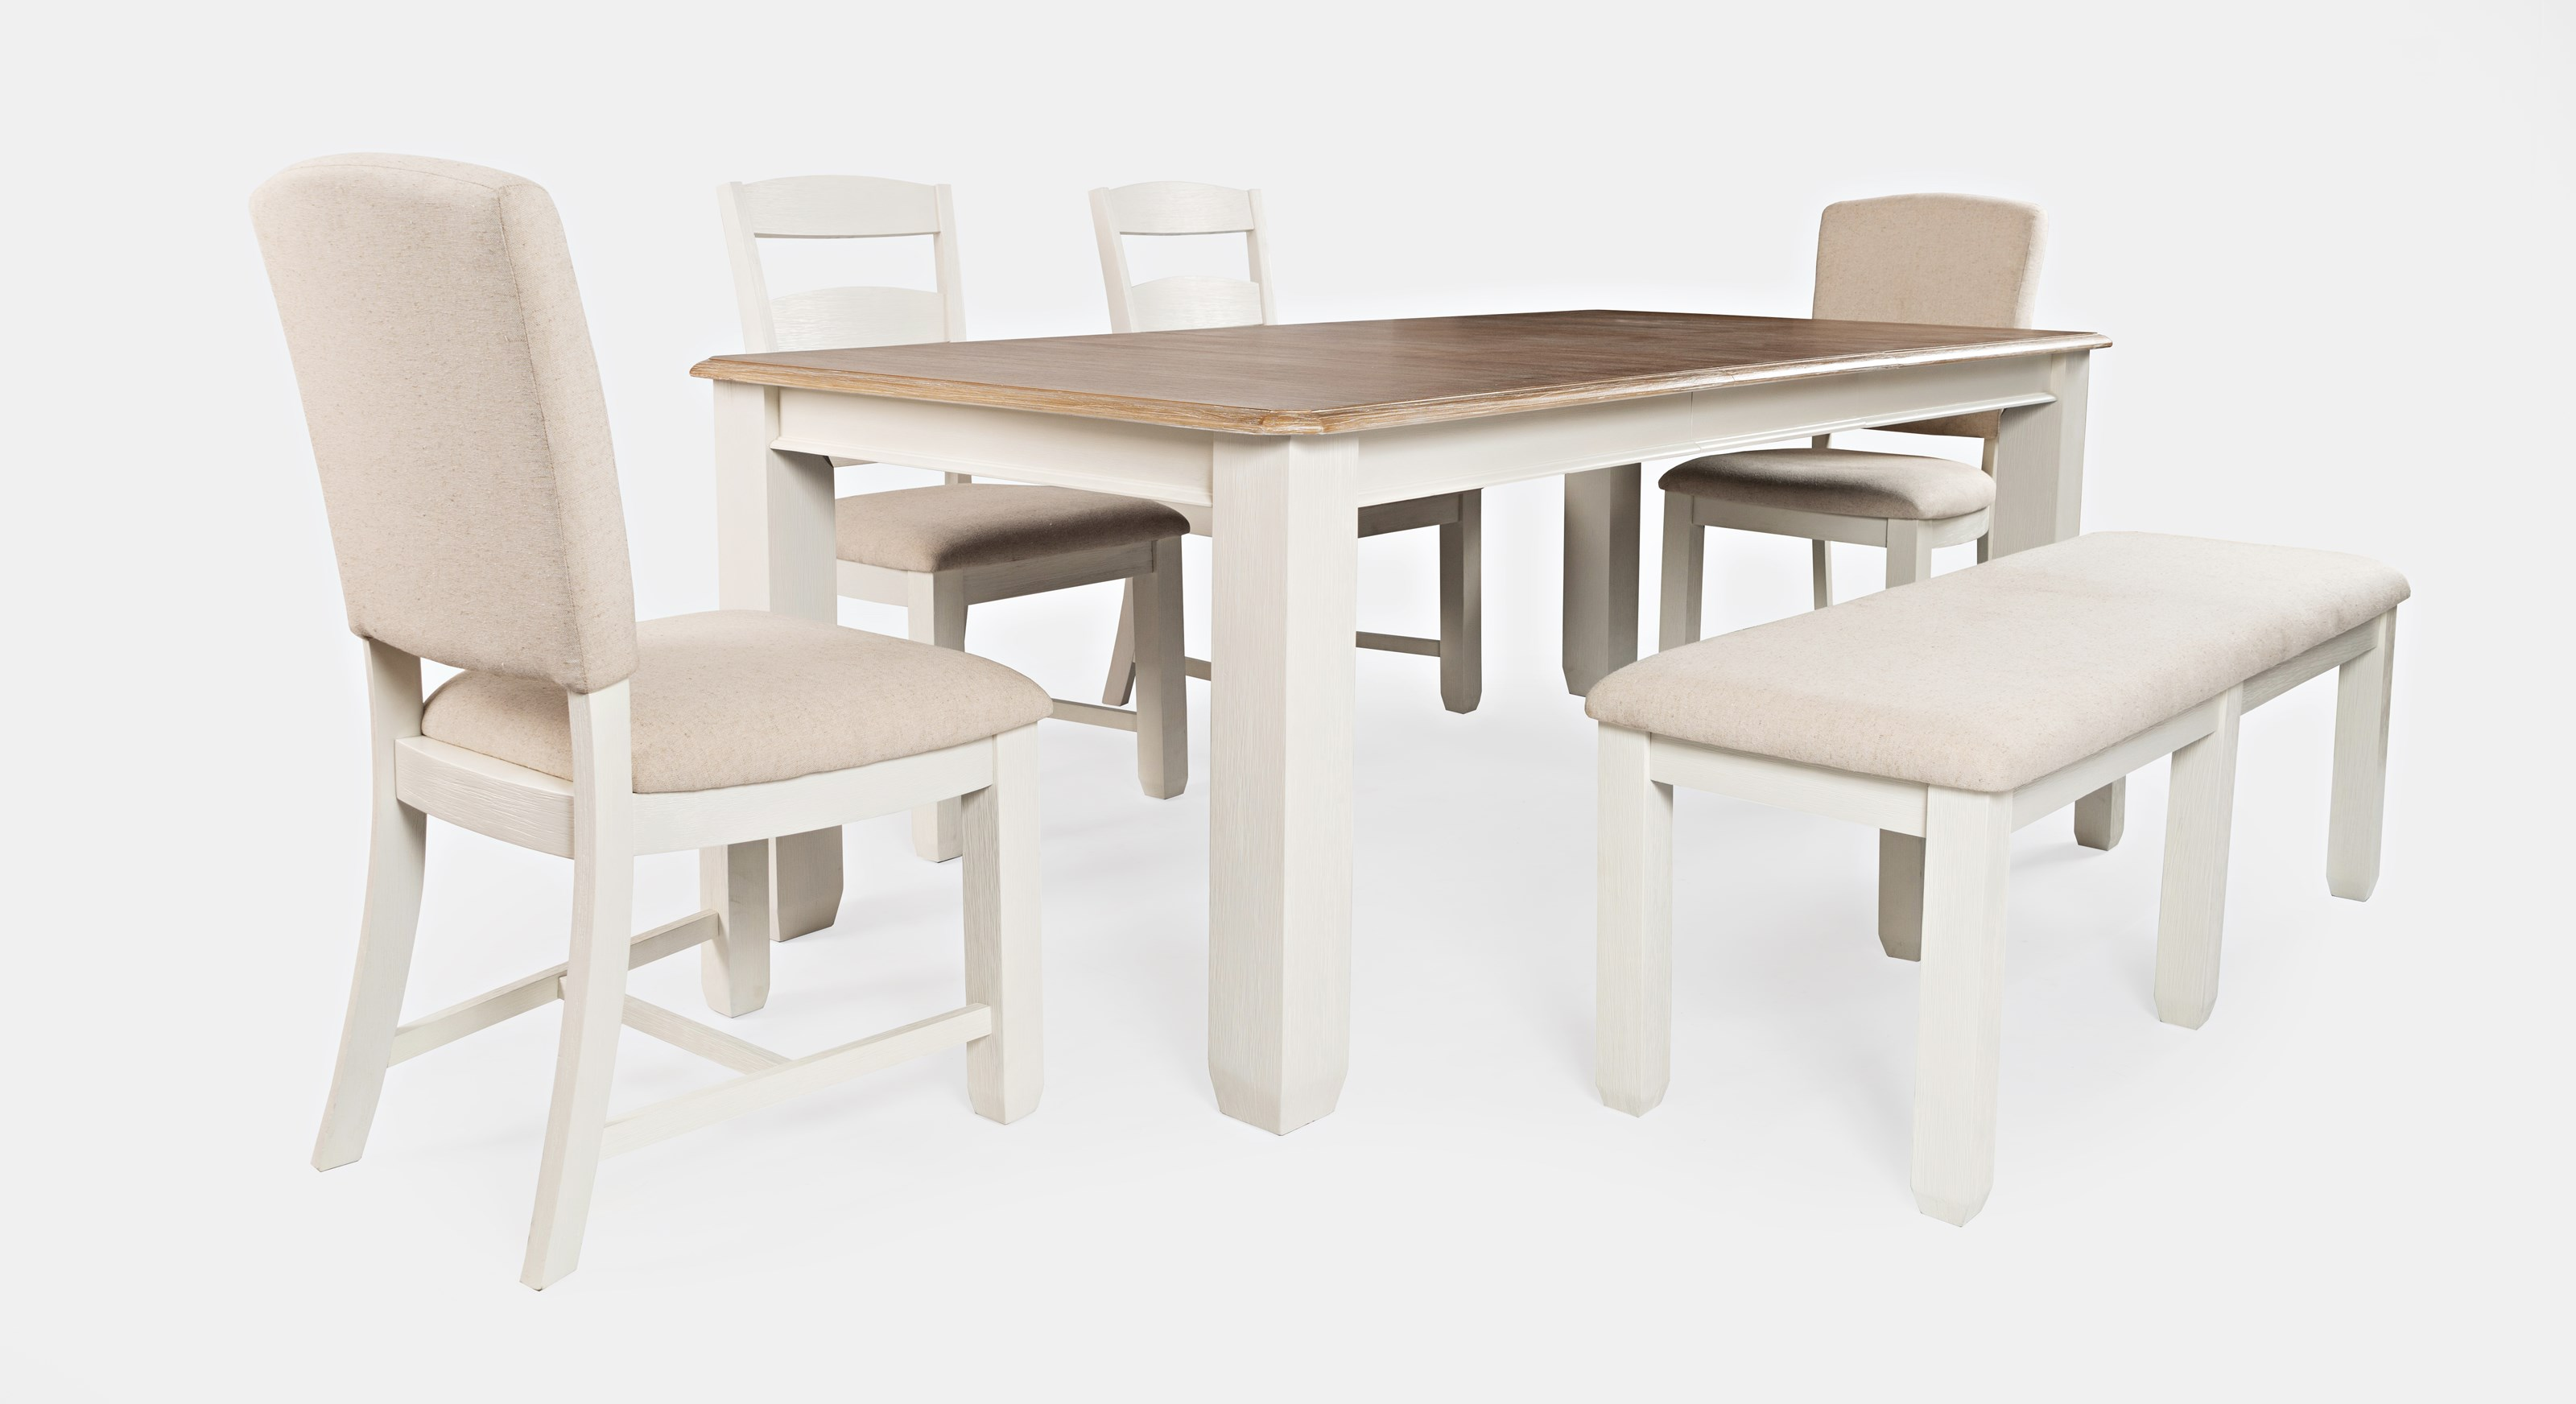 Dana Point 6-Piece Table and Chair Set by Jofran at Jofran